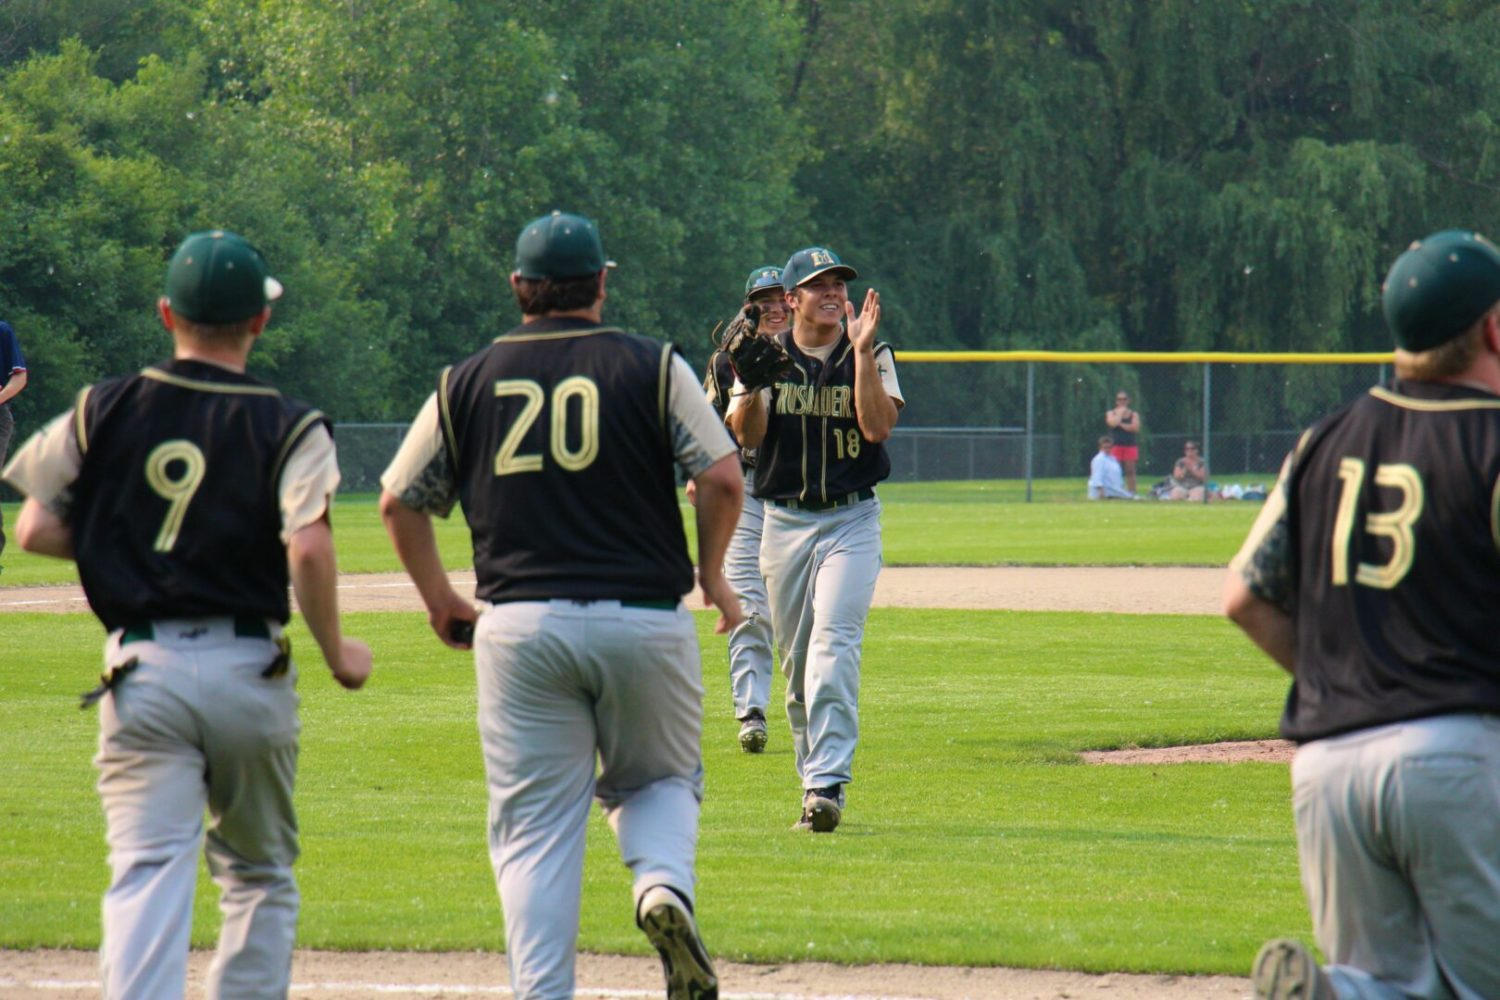 Muskegon Catholic baseball team gets past Potterville 2-1, needs two more wins for a Division 4 state title